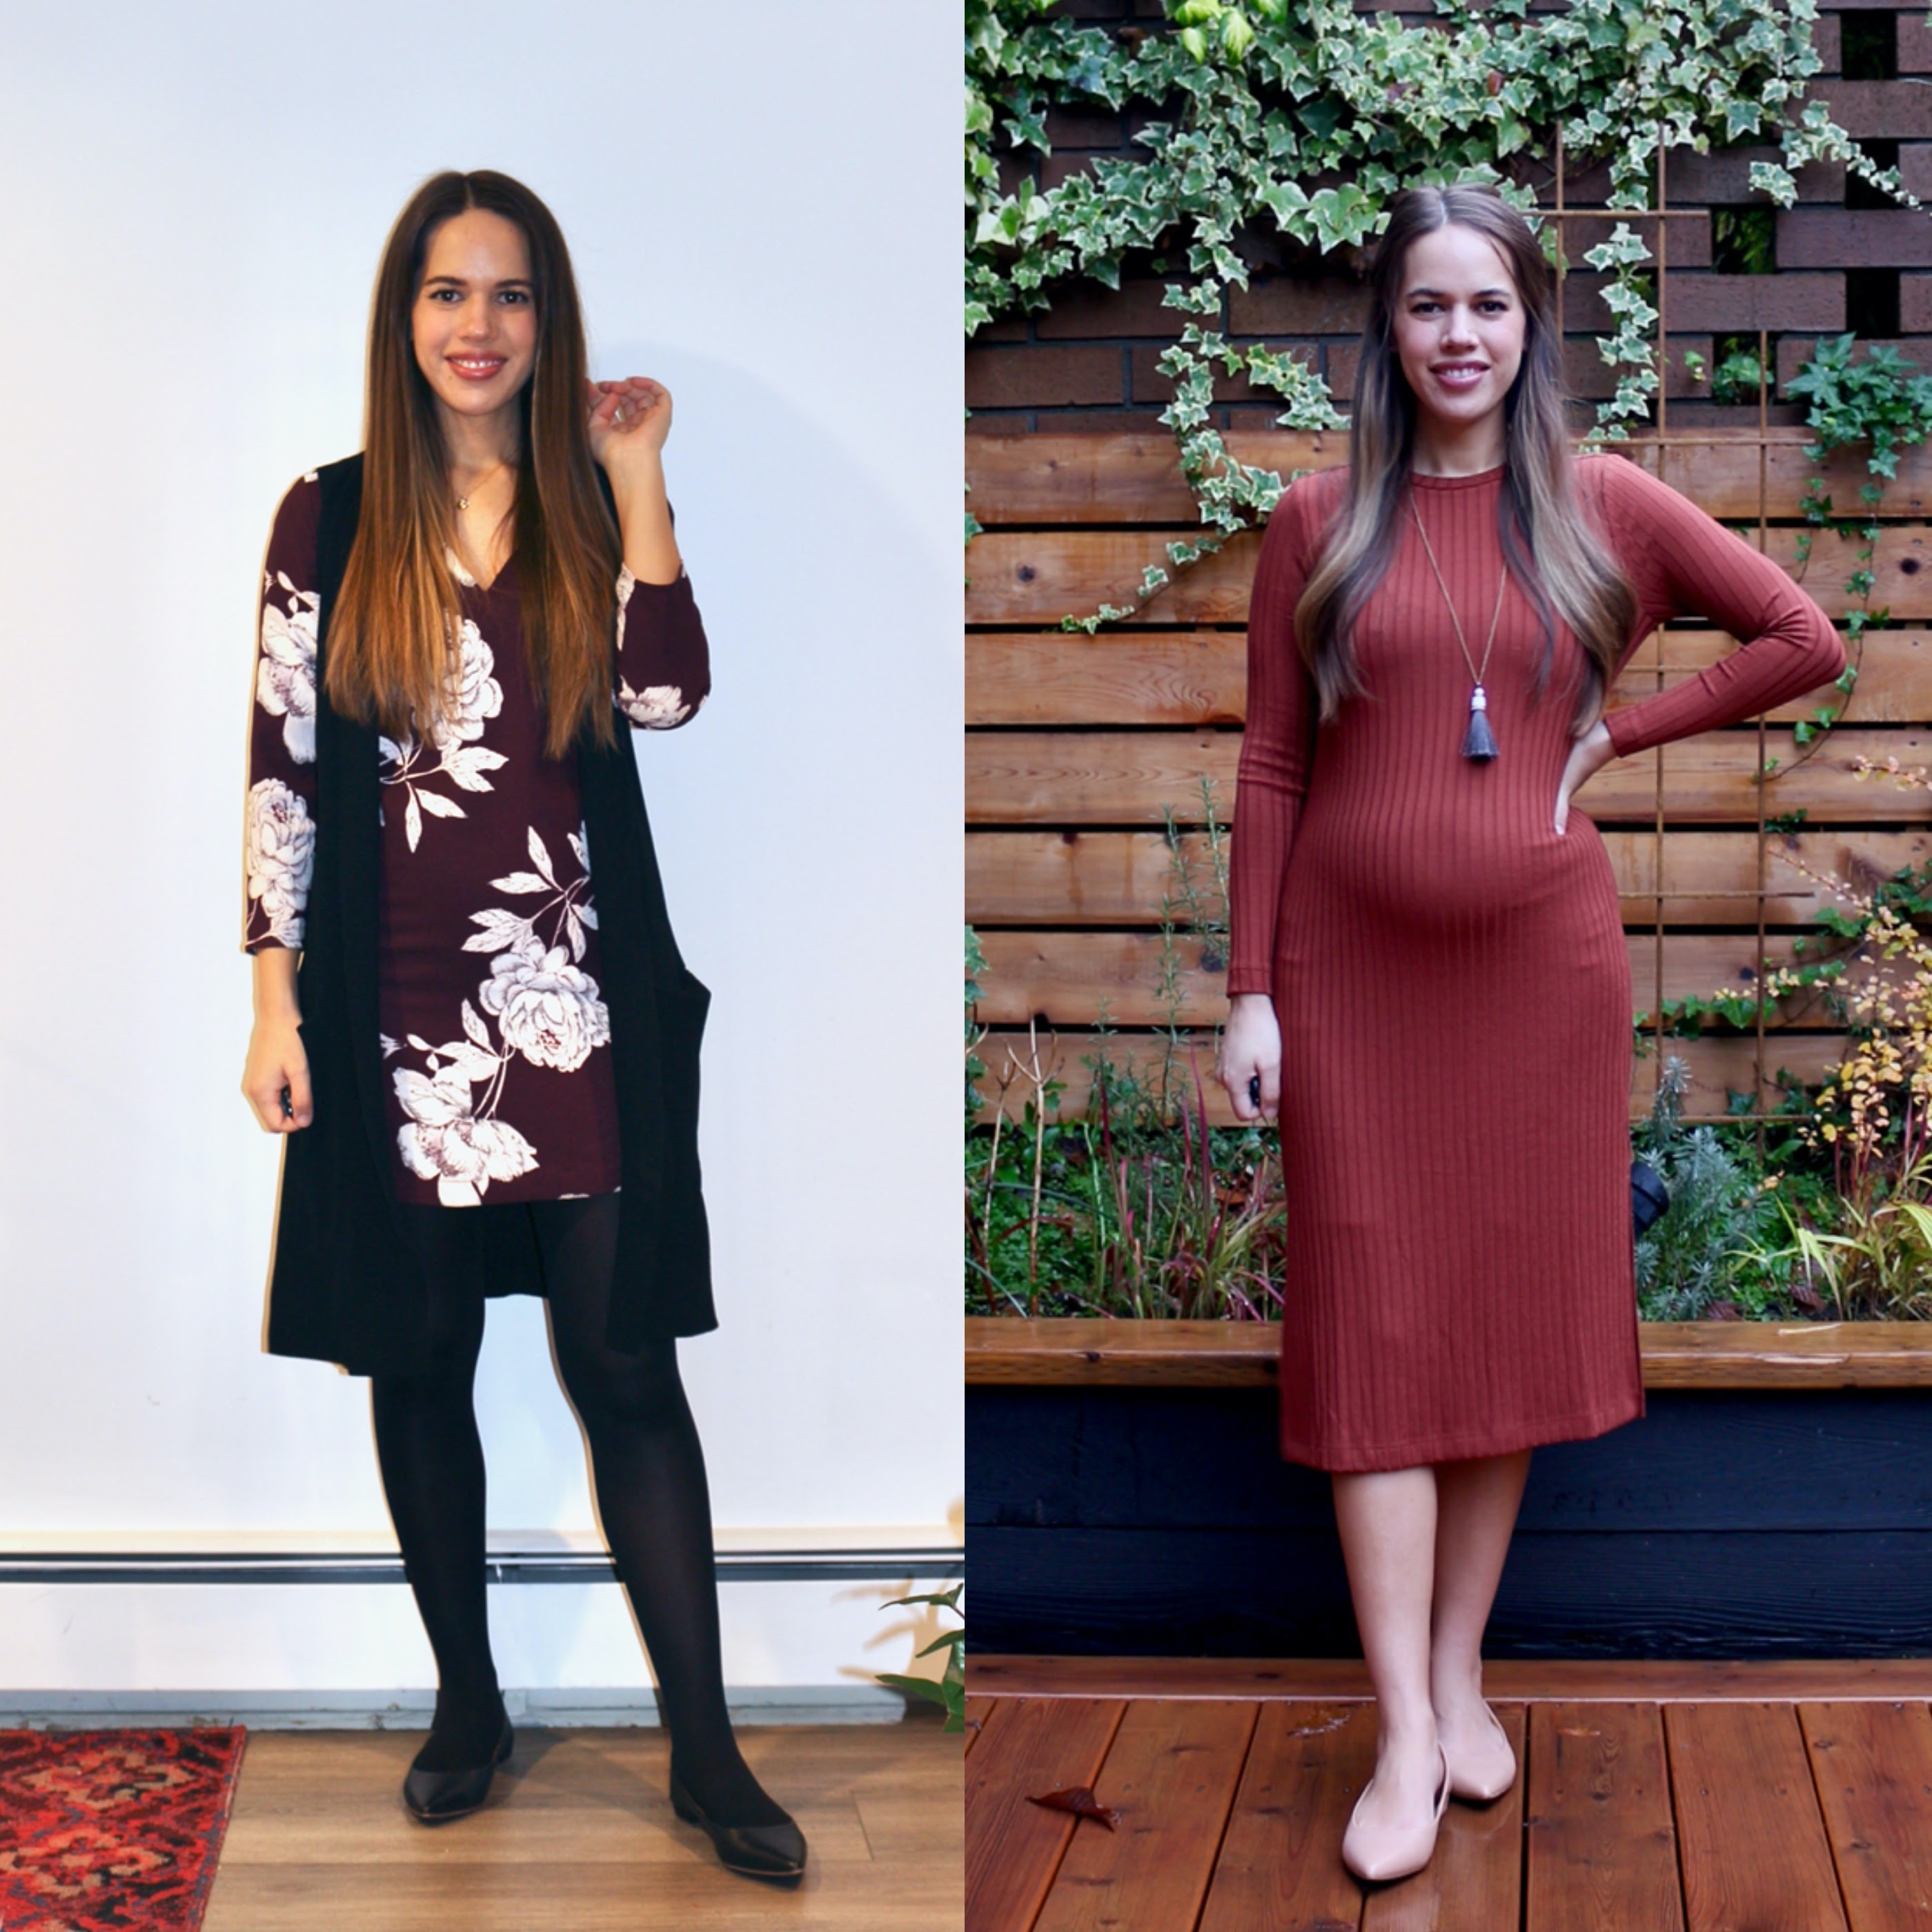 Jules in Flats - November Outfits Week 4 (Business Casual Workwear on a Budget)